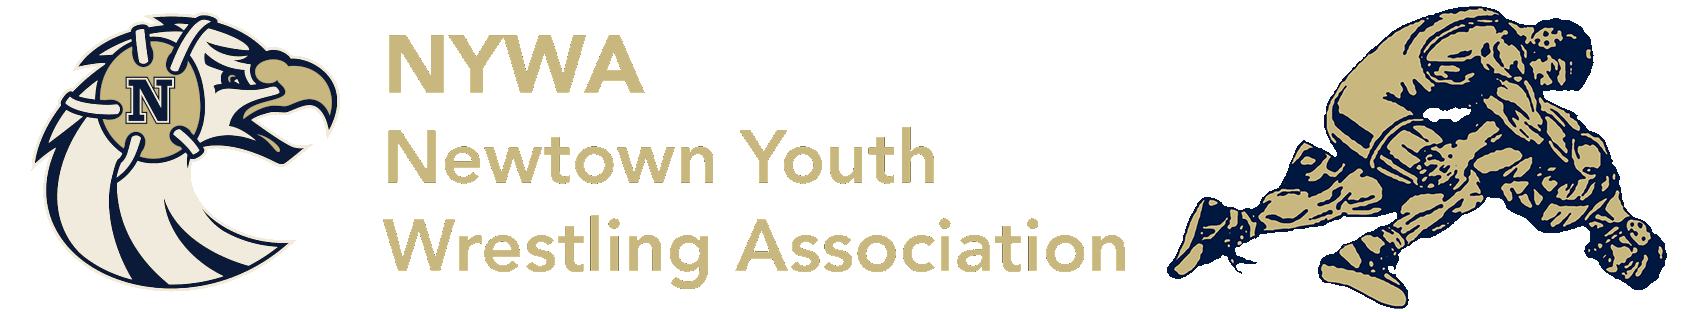 Newtown Youth Wrestling Association, Wrestling, Points, Gym